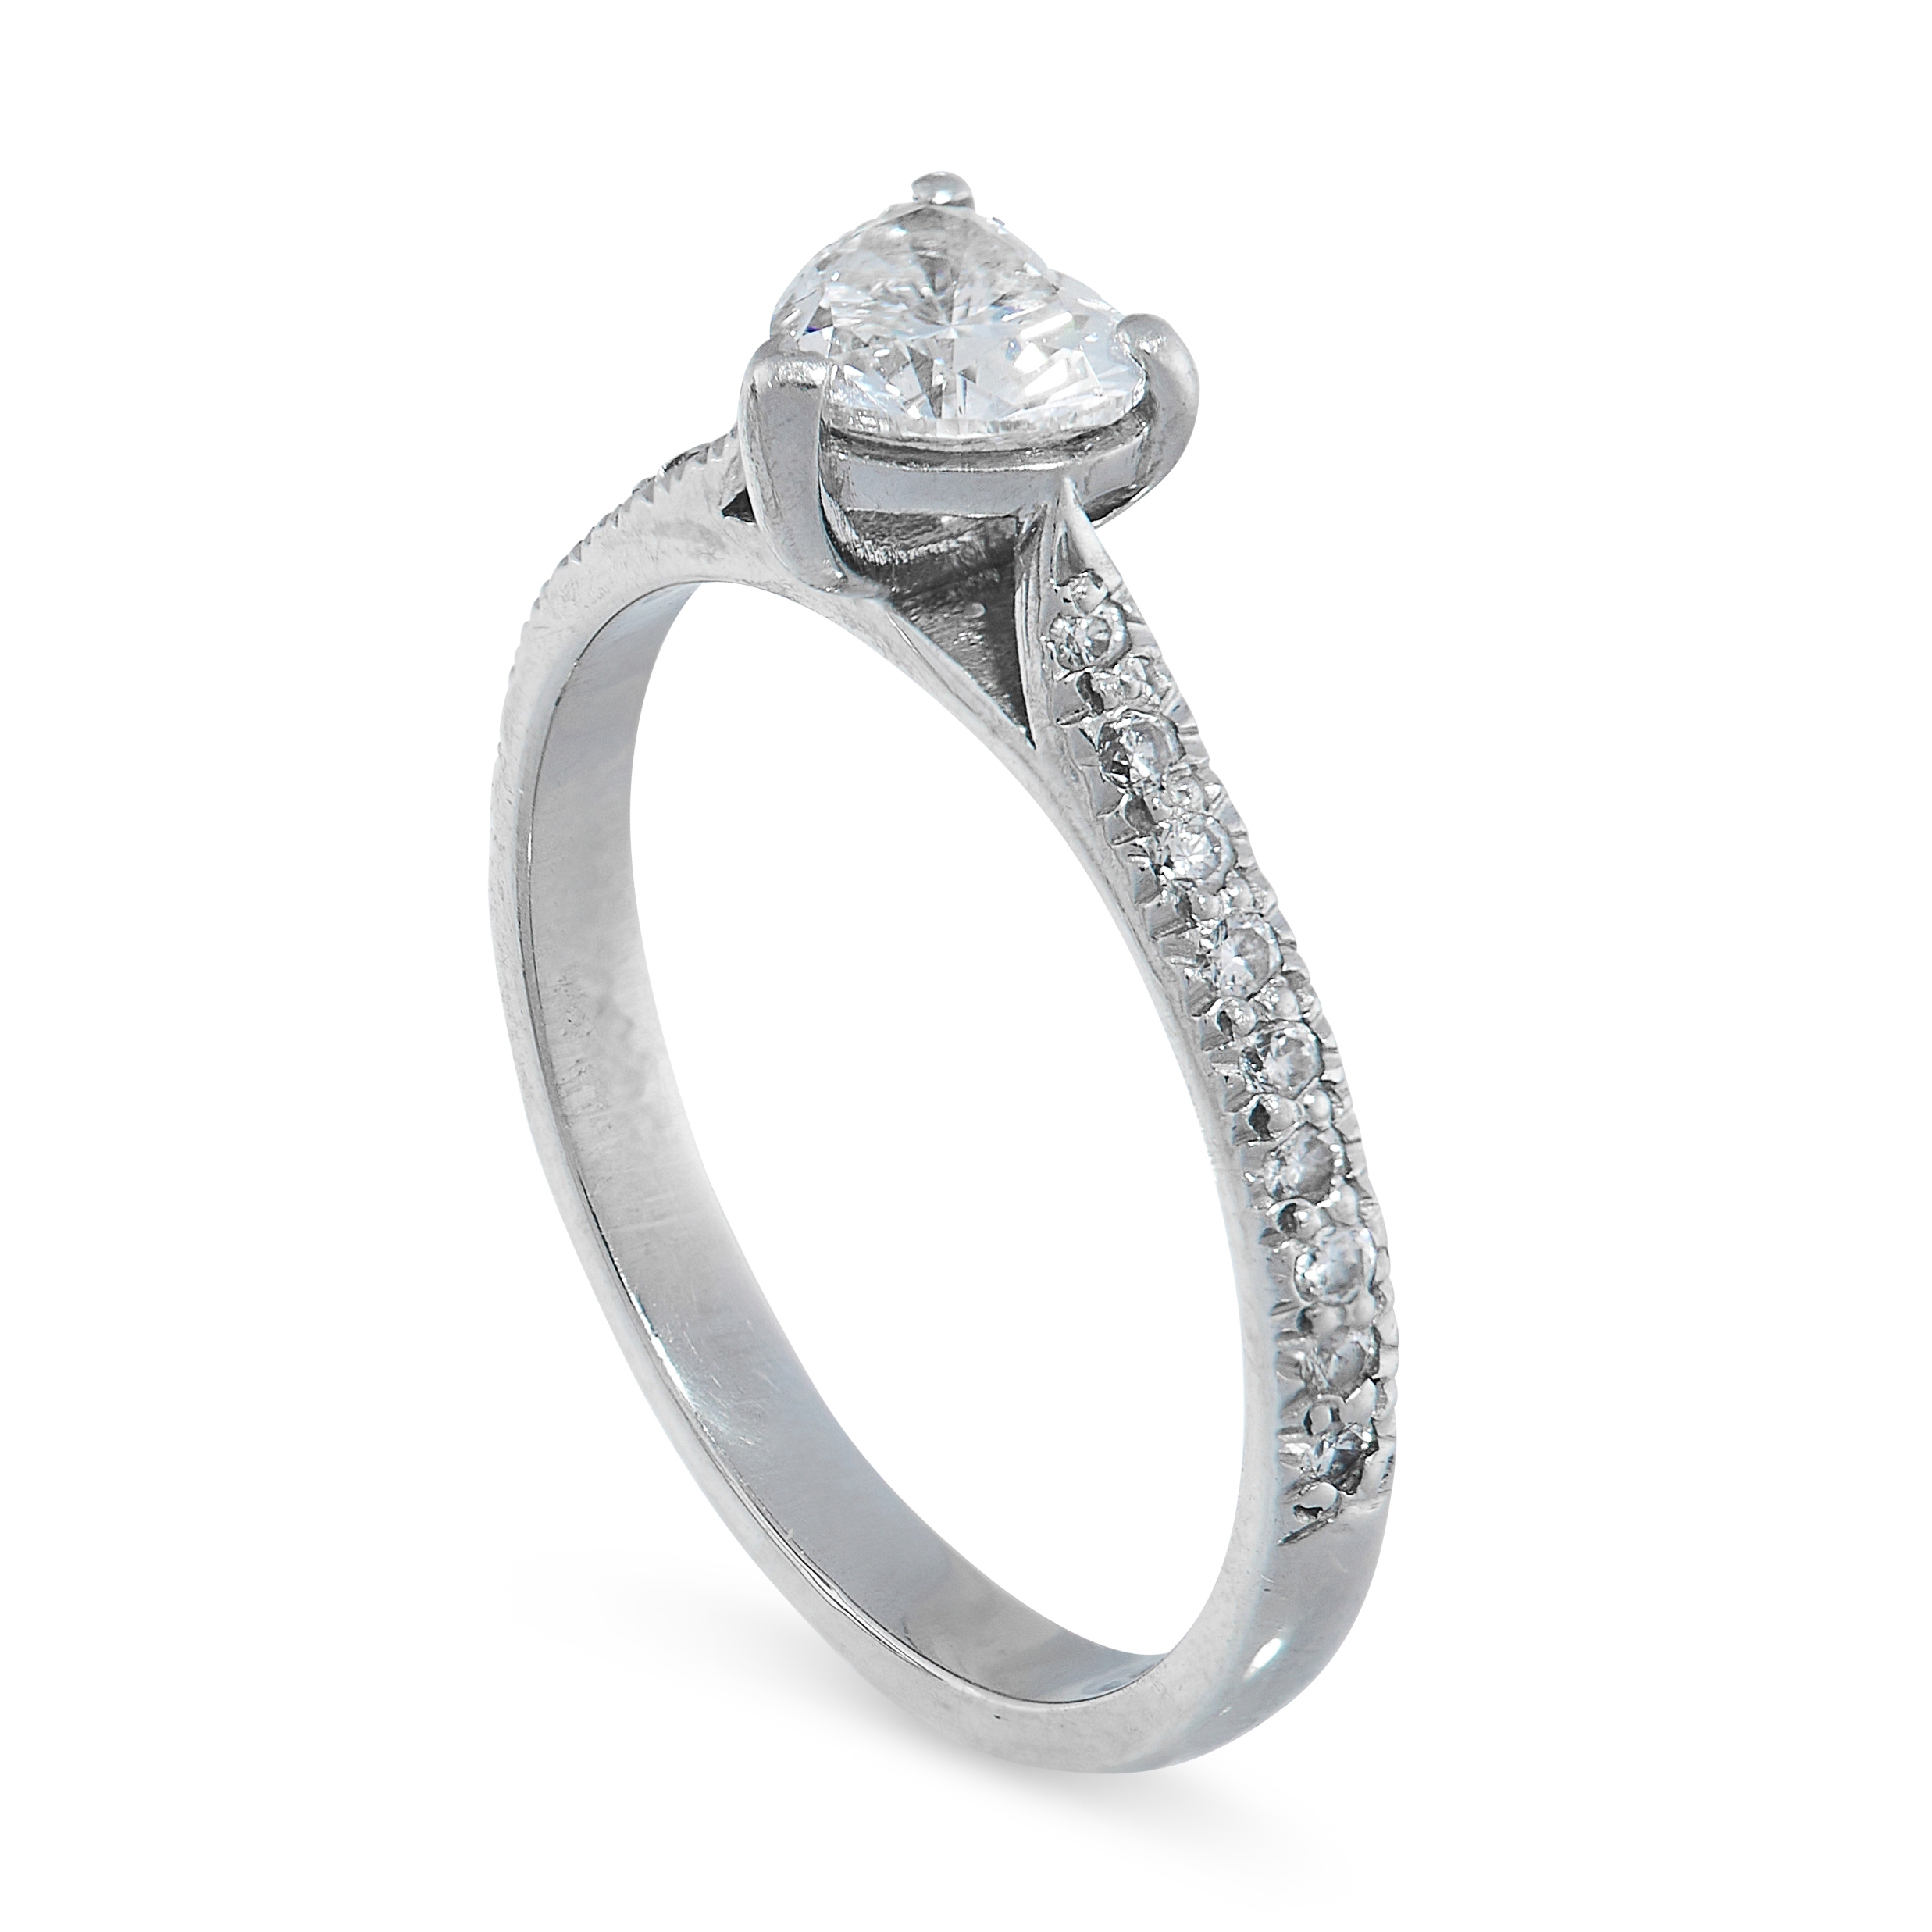 DIAMOND RING comprising of a heart cut diamond of 0.43 carats with round cut diamonds to the - Image 2 of 2